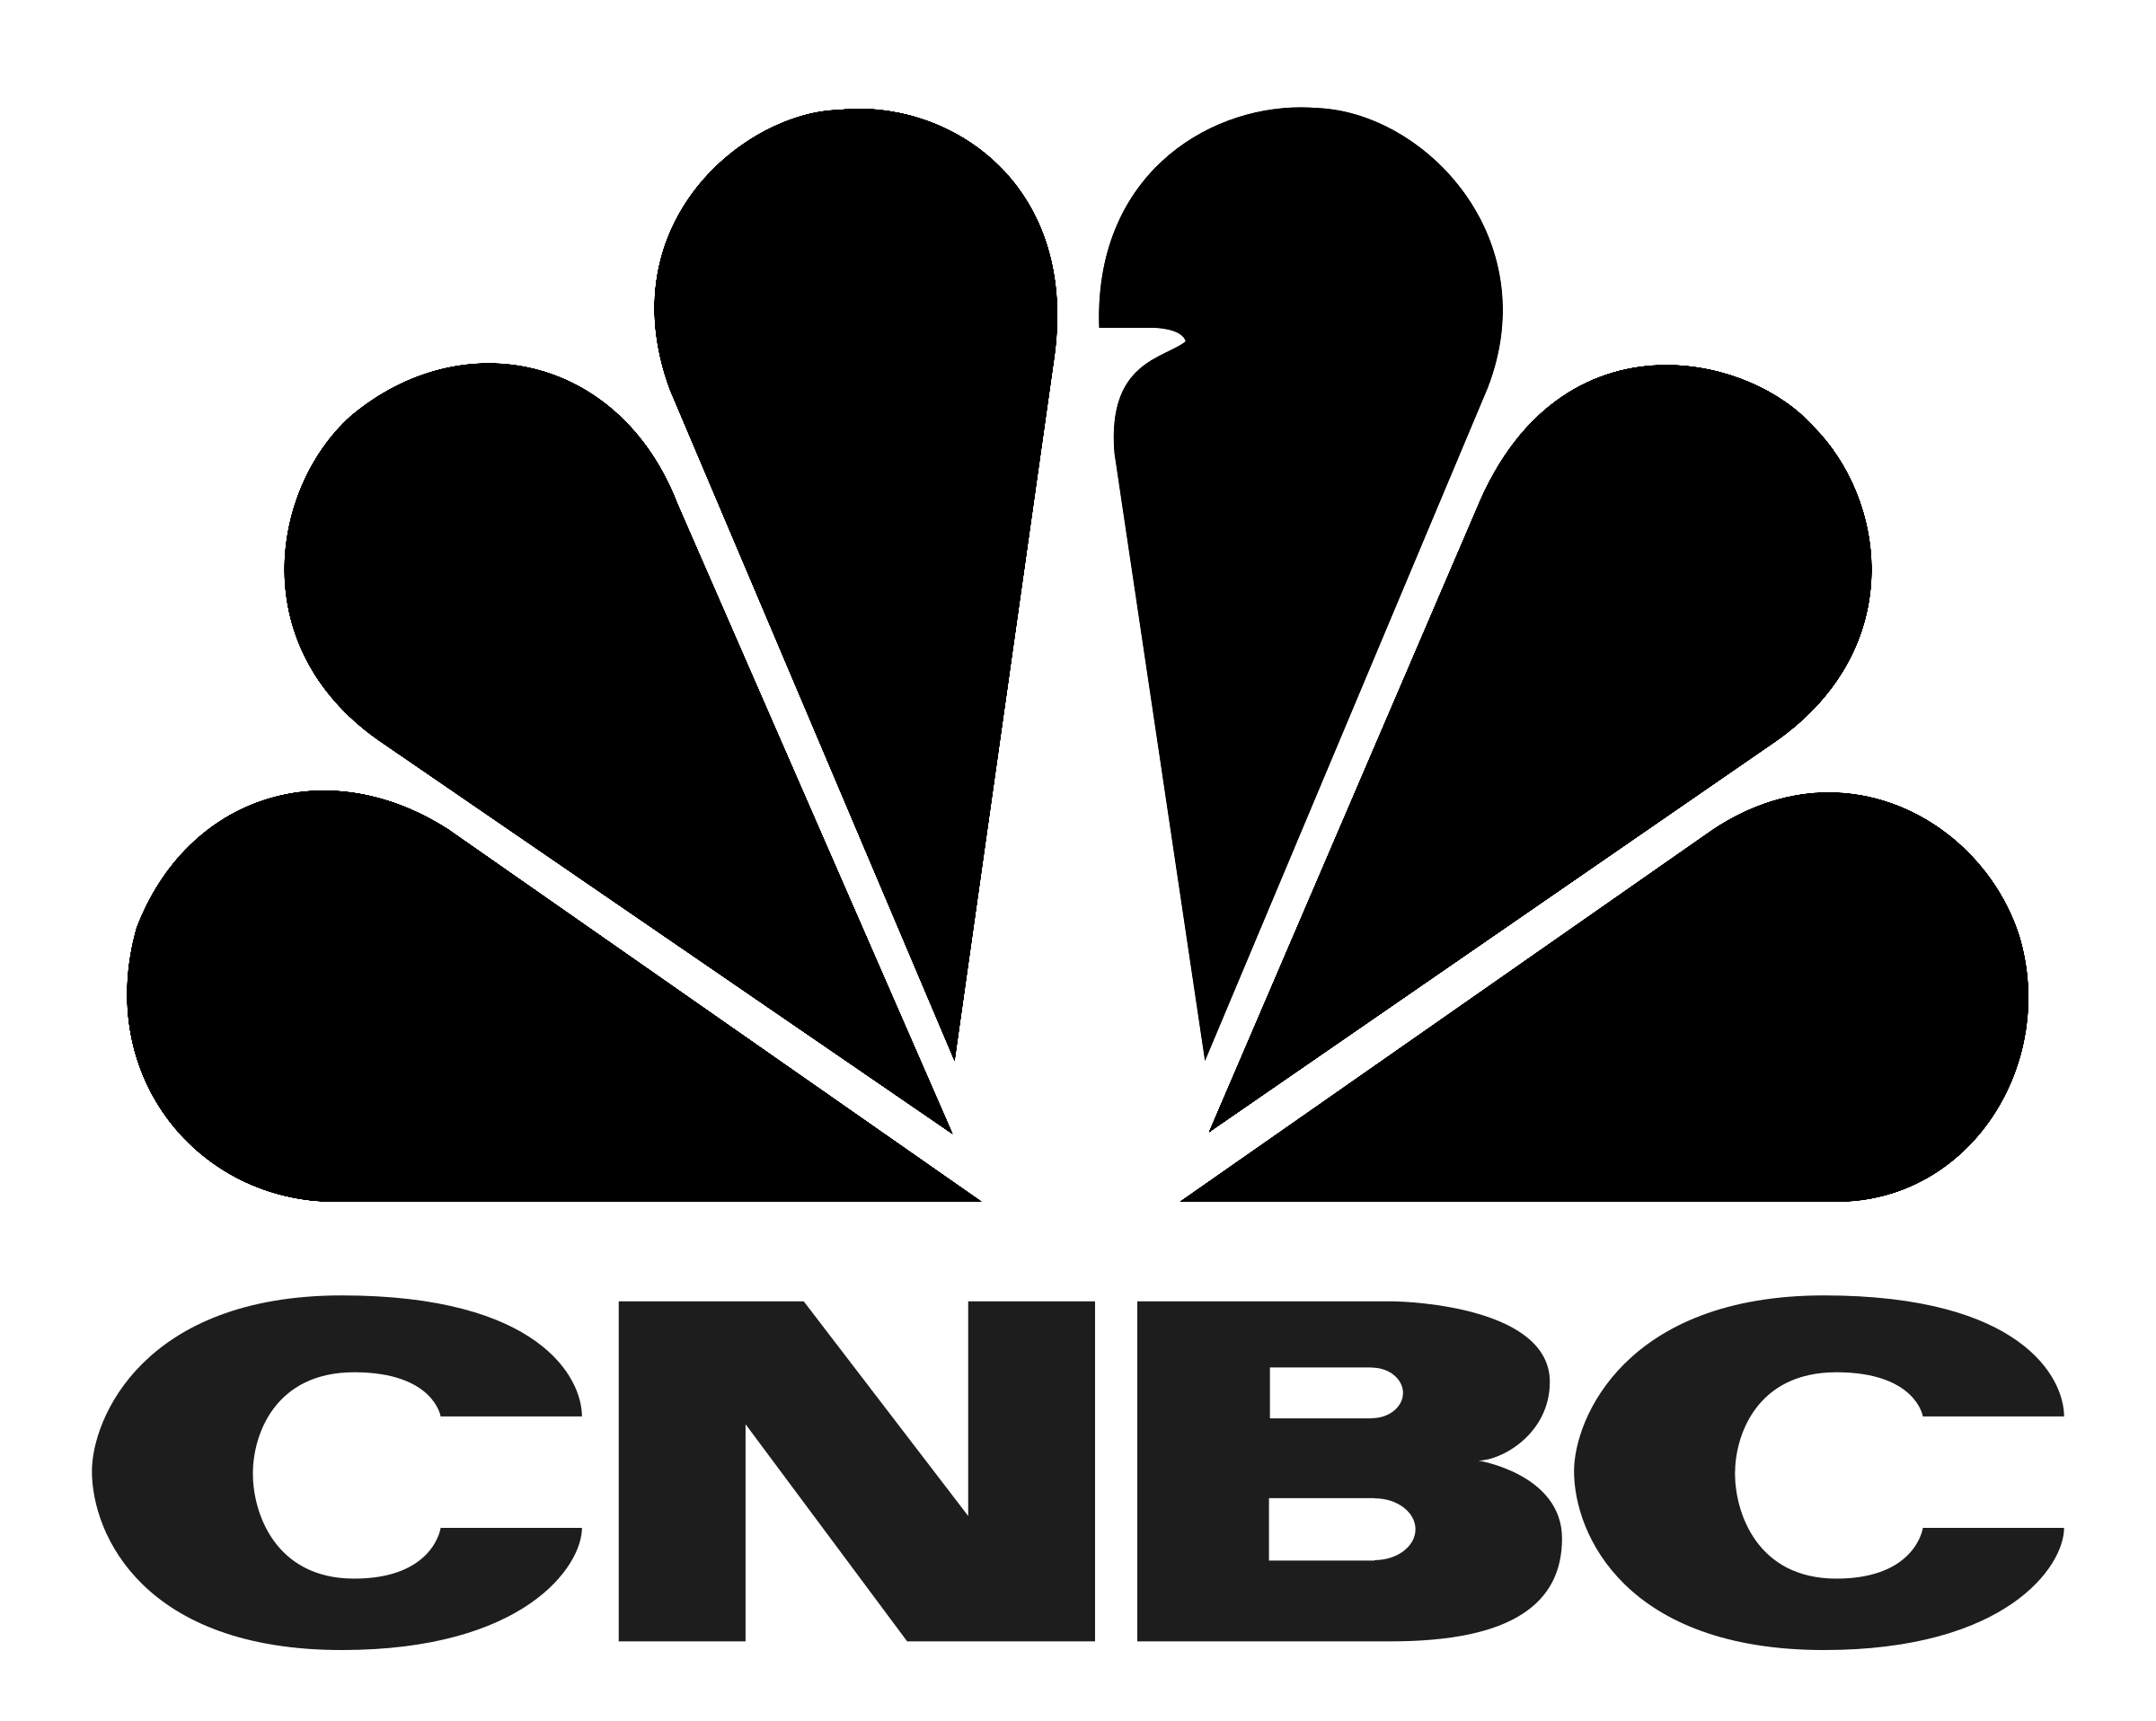 CNBC Logo PNG Transparent & SVG Vector - Freebie Supply